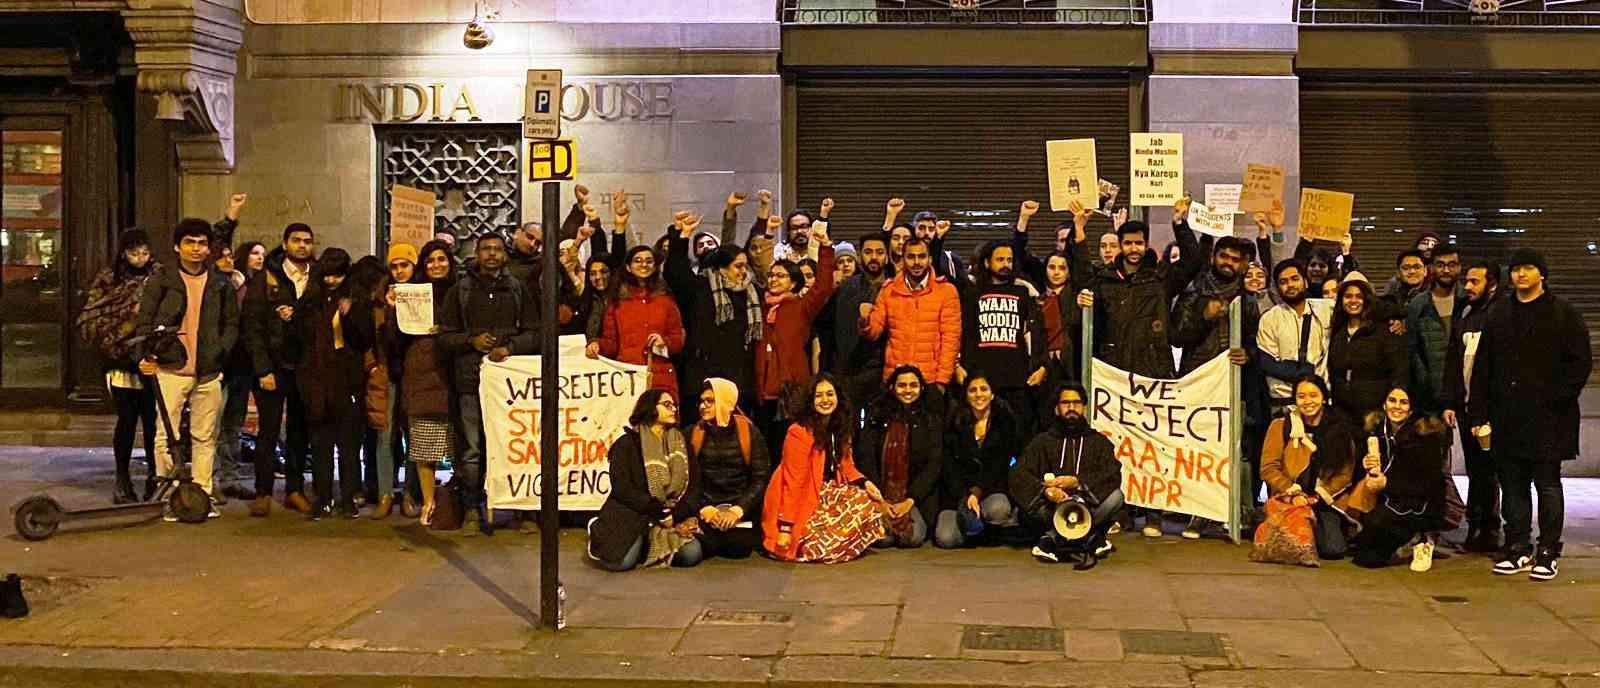 A protest against the Citizenship Amendment Act outside London's India House on January 8.